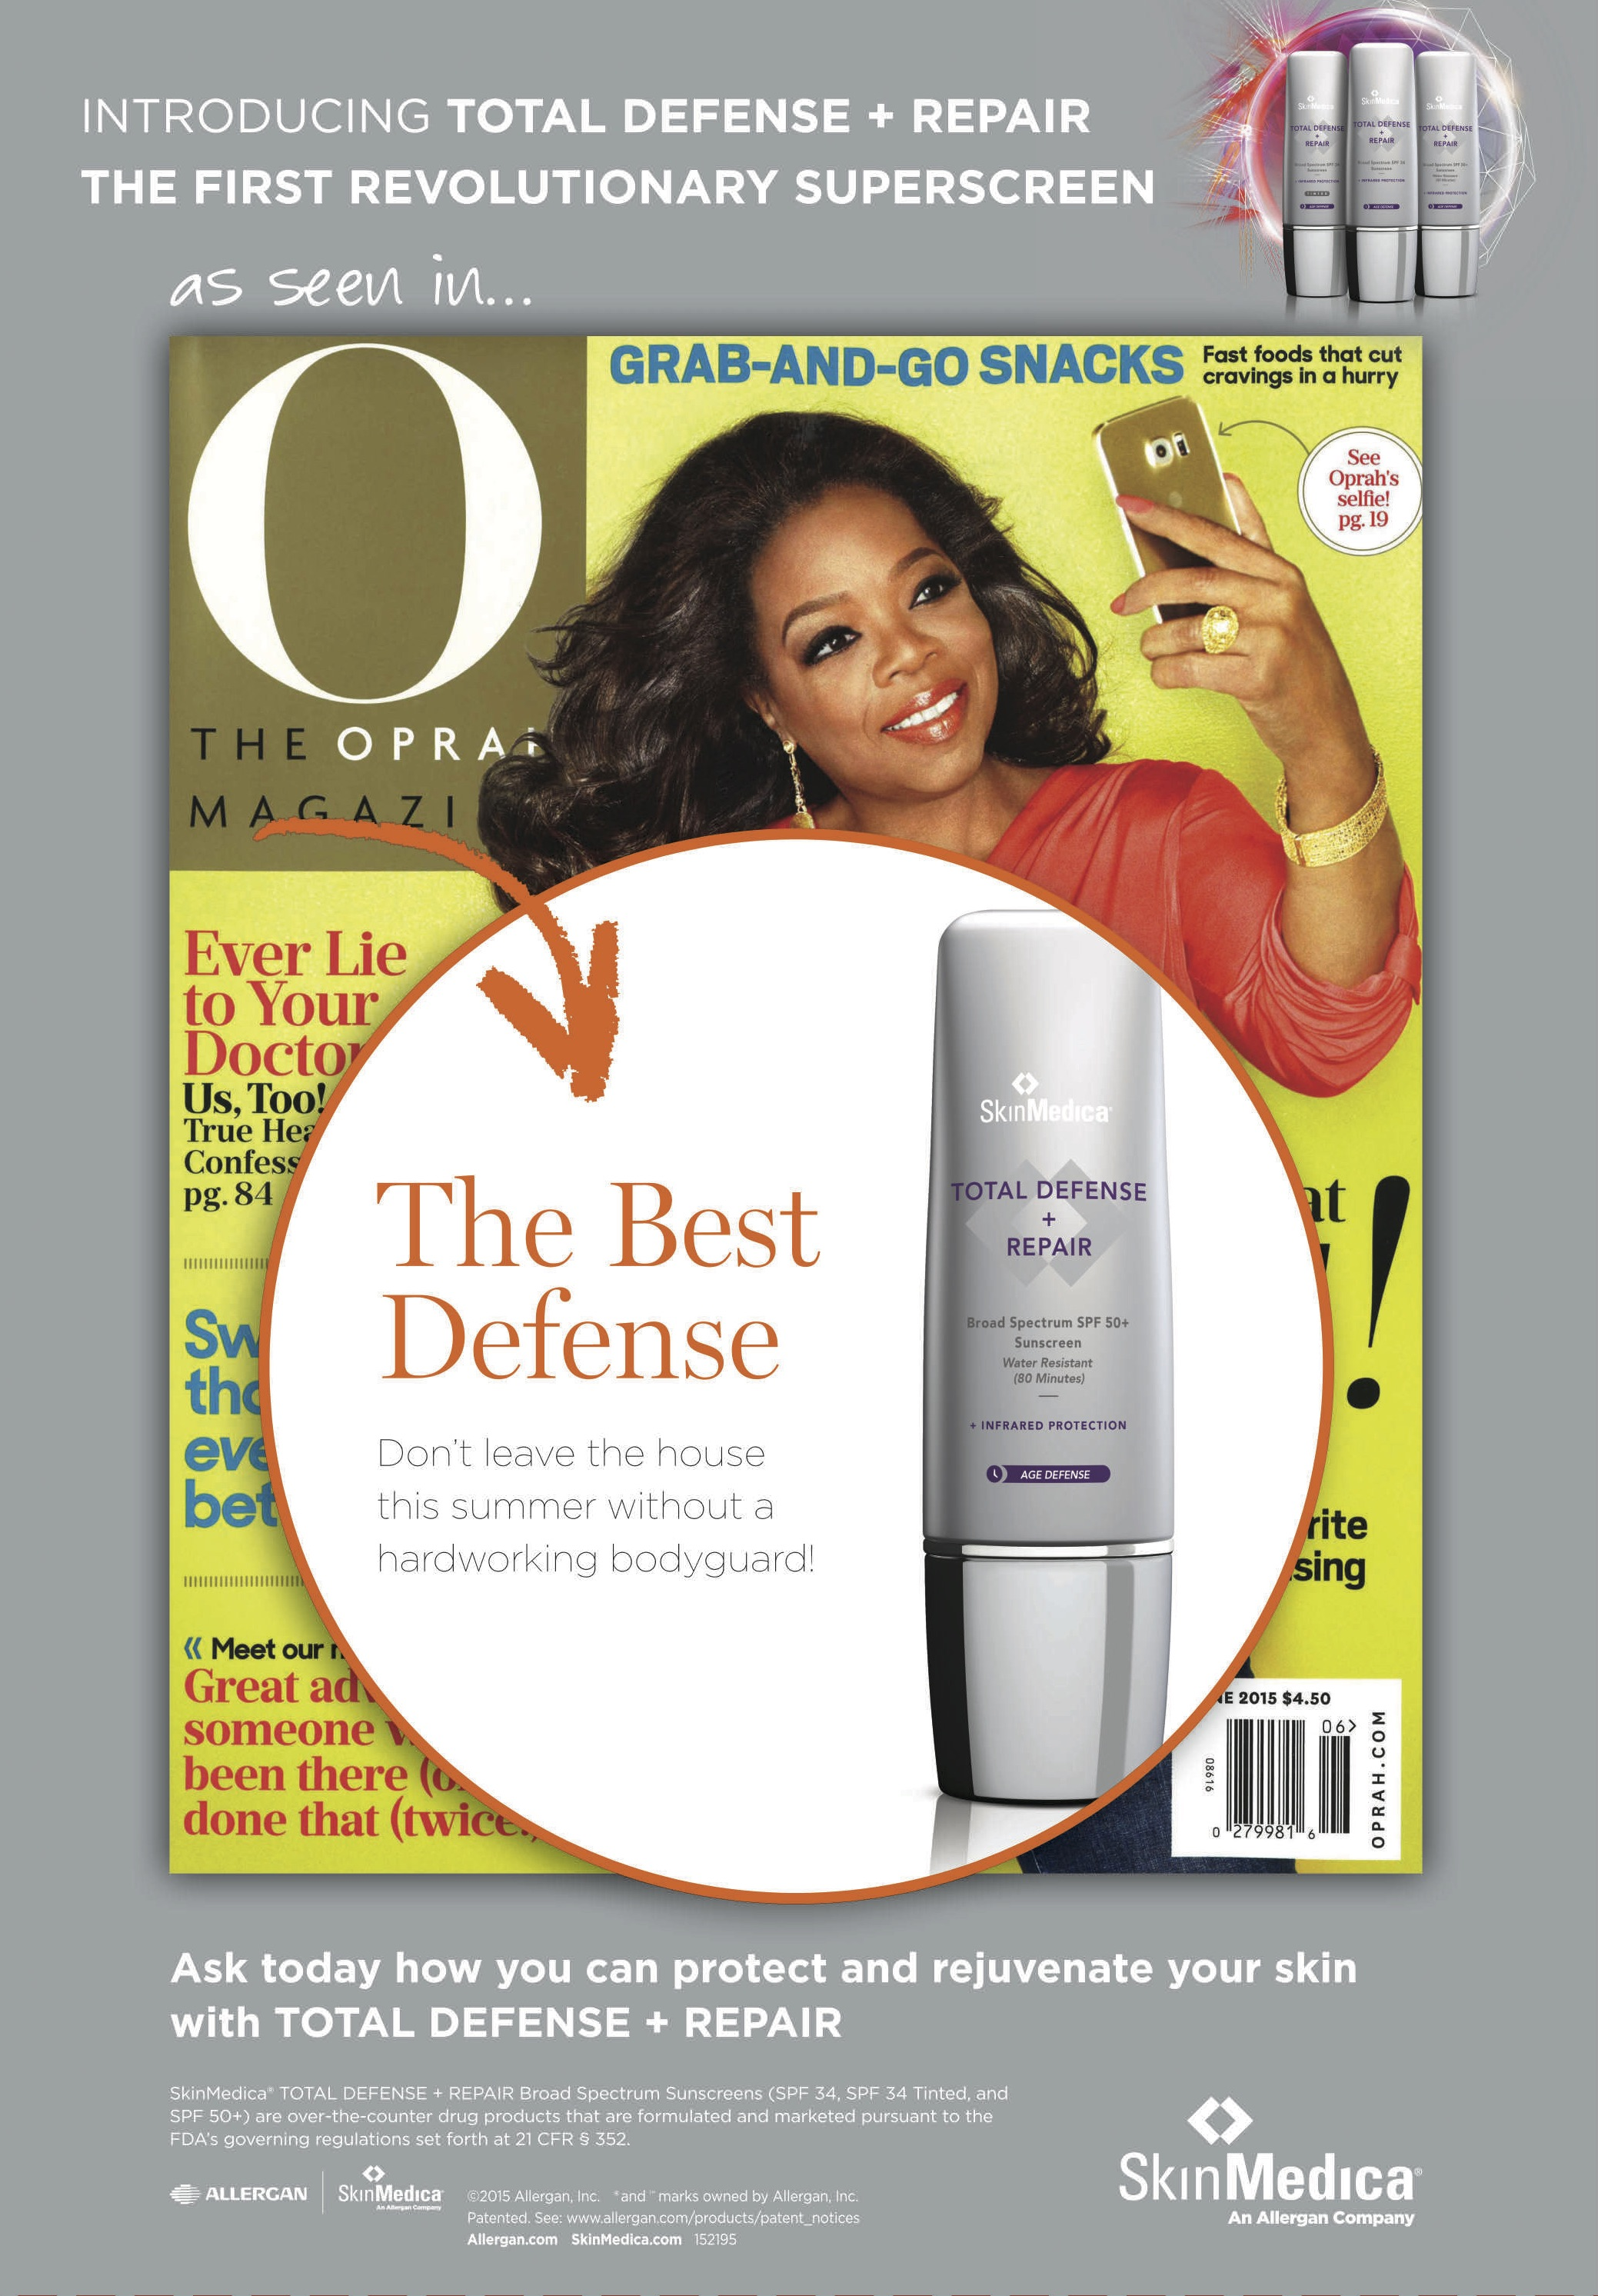 Total Defense & Repair Tent Card Oprah Magazine.jpg